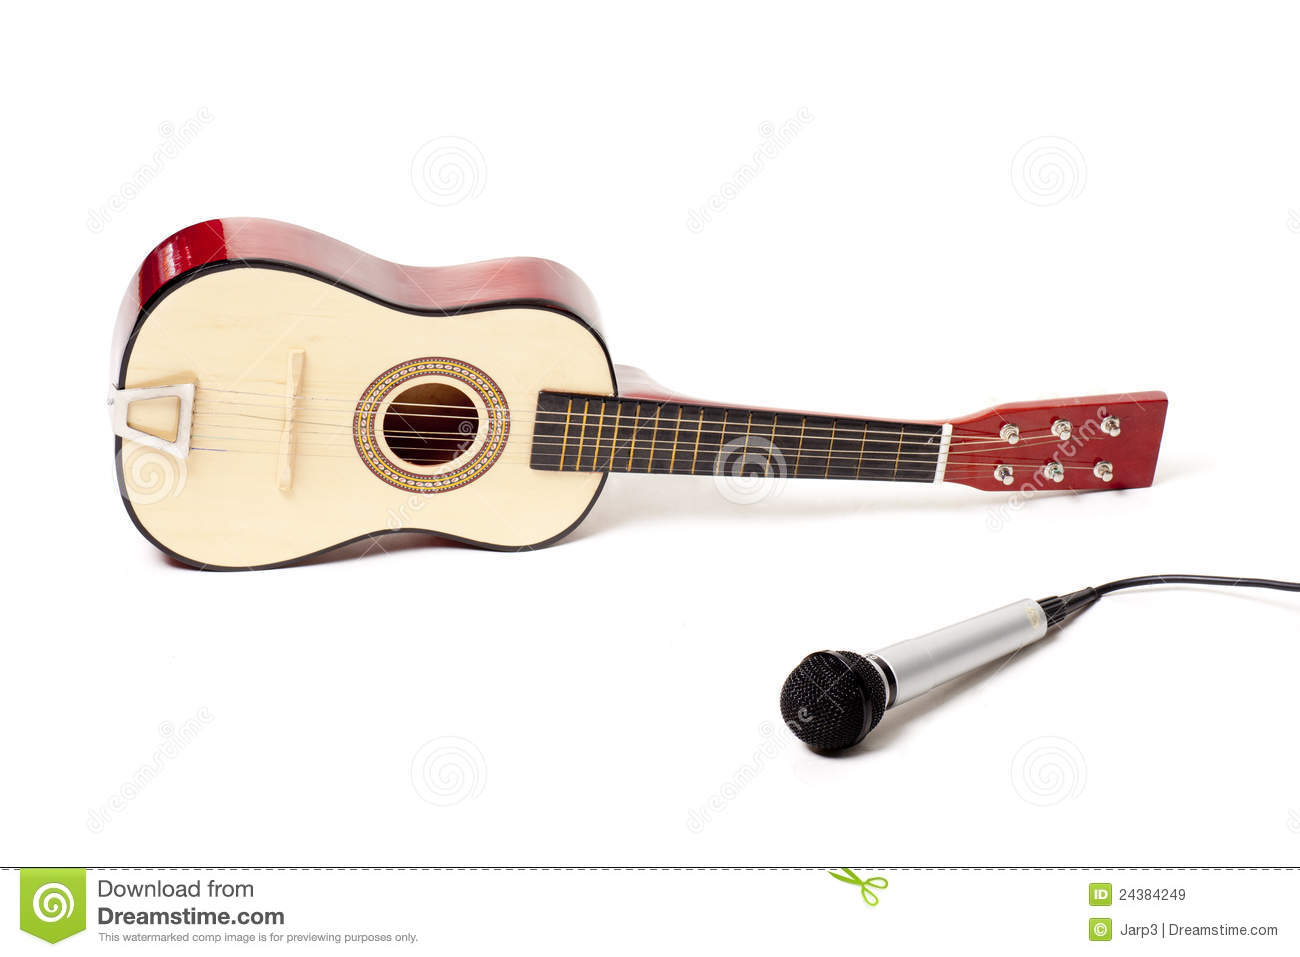 Guitar And Microphone Stock Image Image Of Popular, Music. Best Pmp Certification Training. Online Hr Certification Programs. Business Promotional Flyers Bp Life Benefits. Multi Line Business Phones Daycare Fishers In. Romantic Maui Weddings D Container Dimensions. Loranger Door And Window Portugal Car Rentals. Laptop Repair Wilmington Nc Maid Service Mn. Waterside Hotel Melbourne Hunger Games Moview